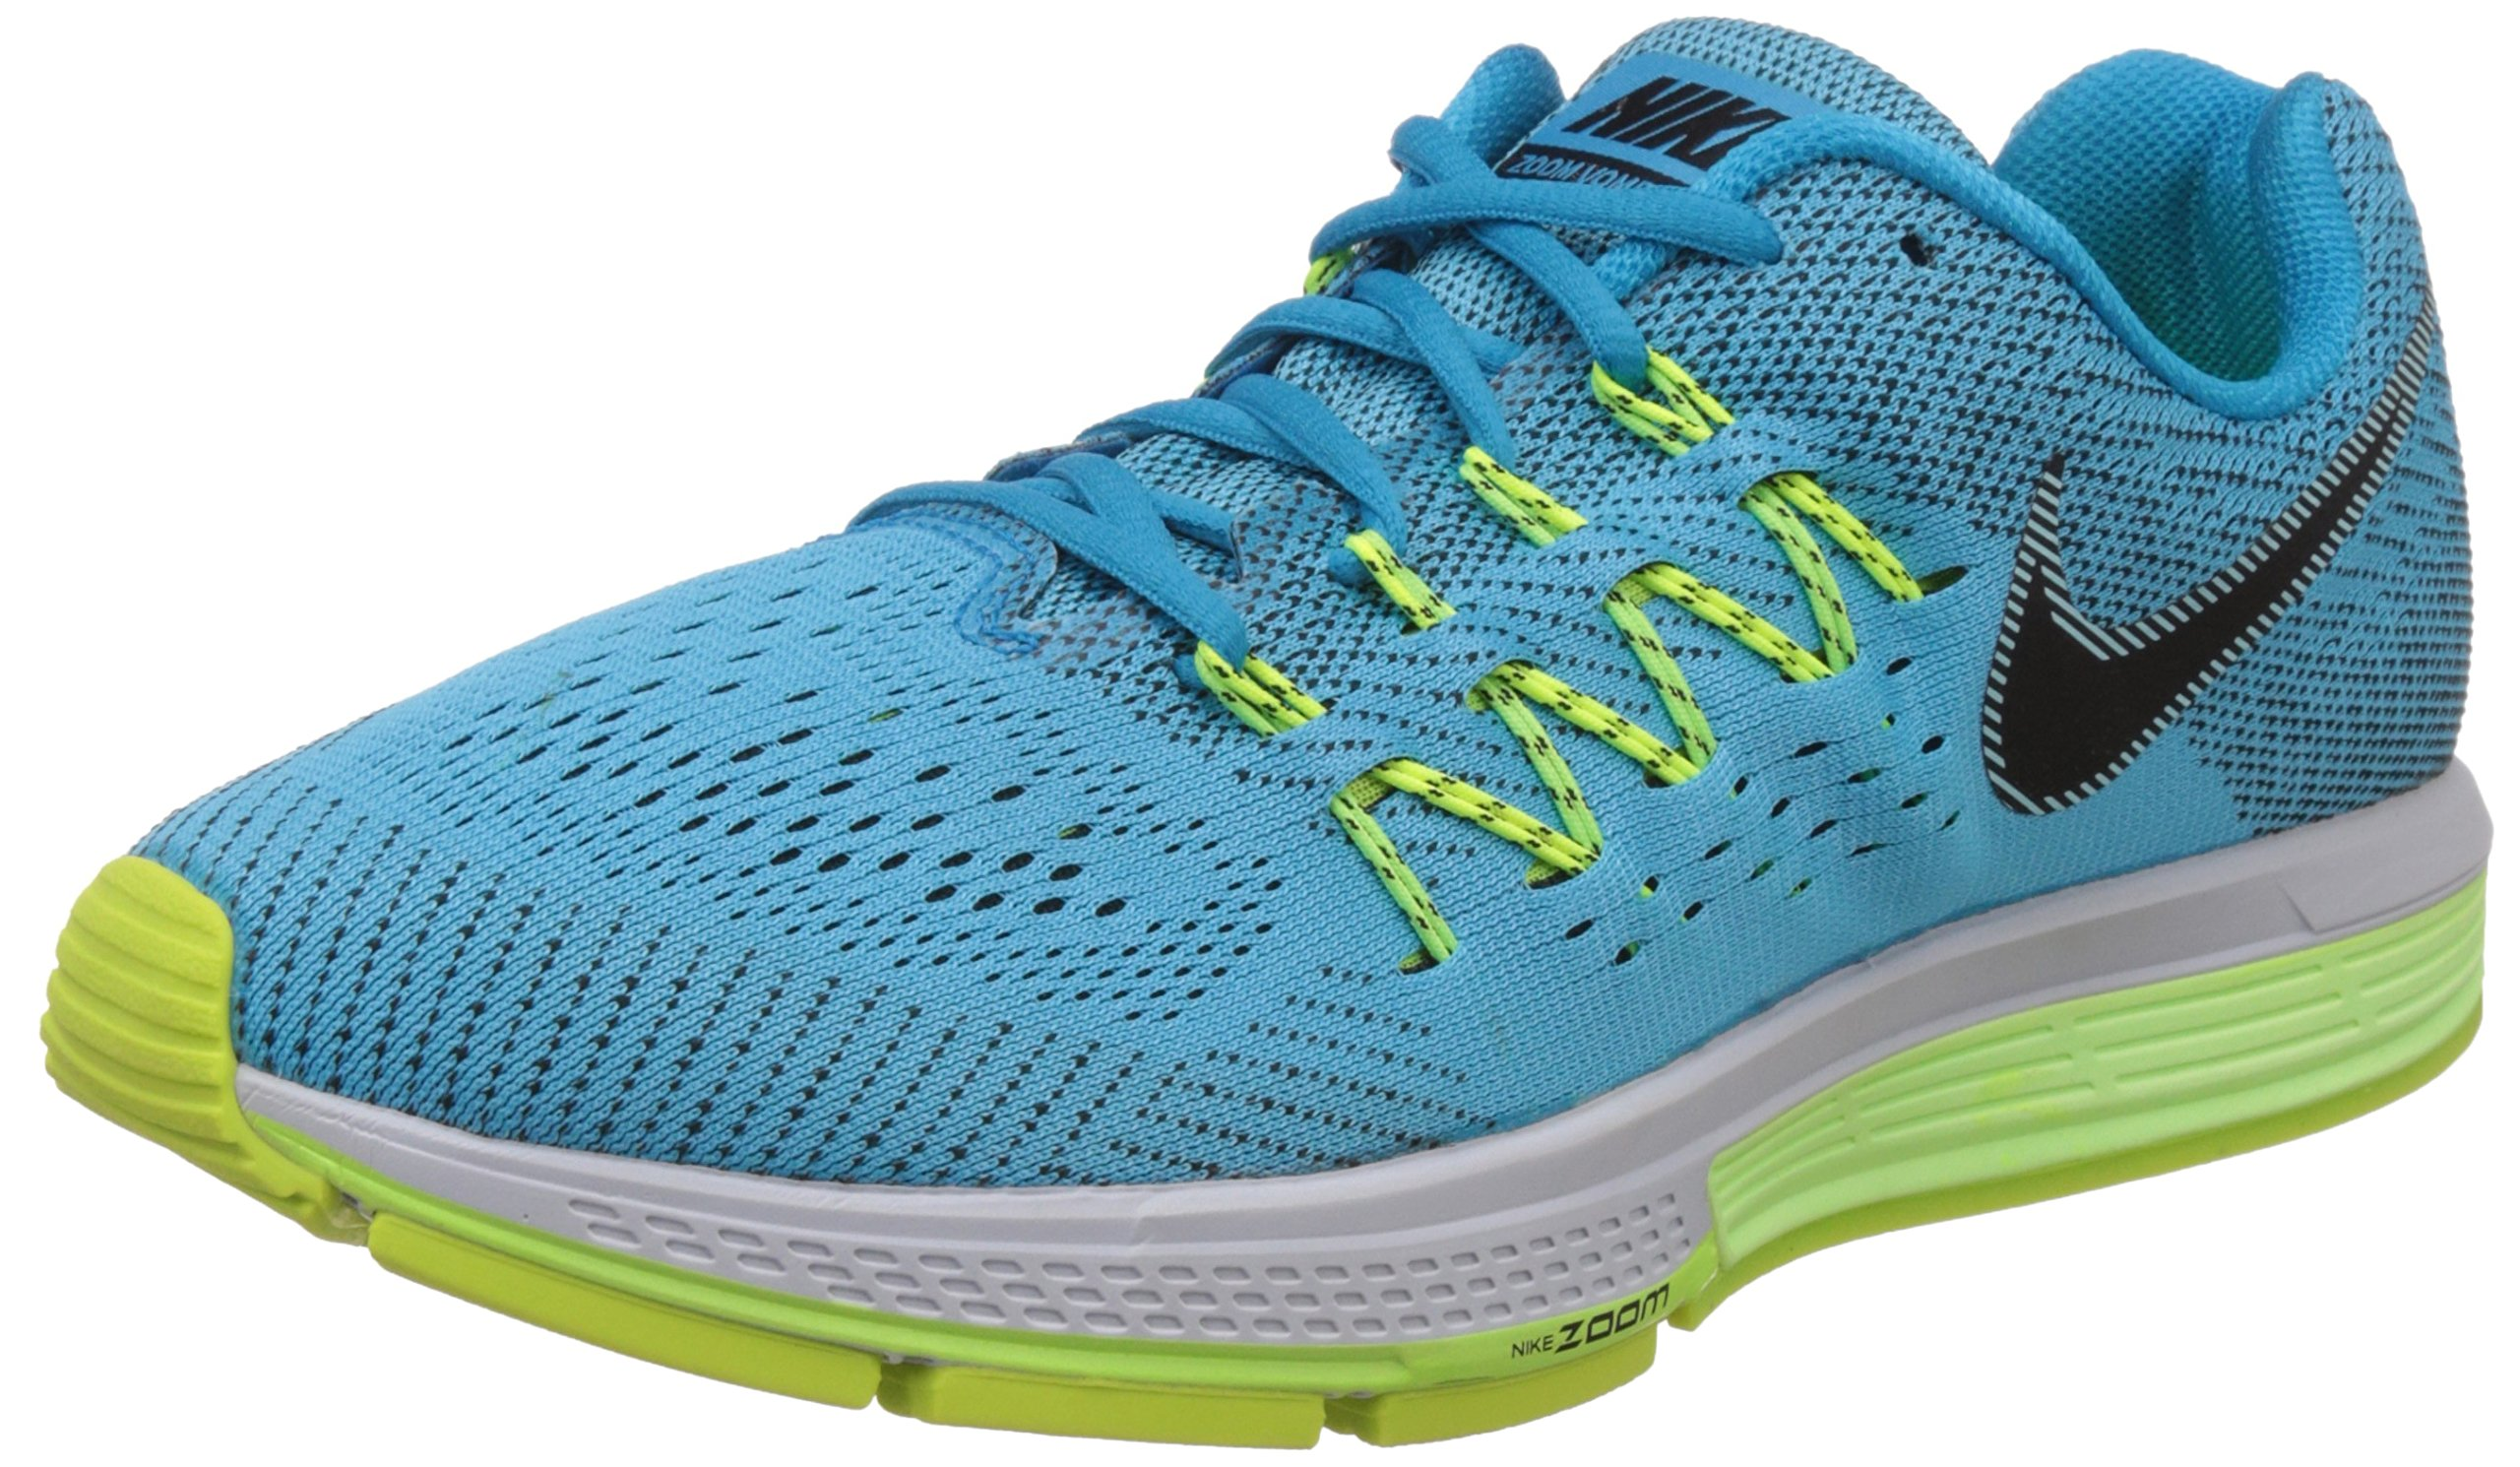 210701ee1d1 Galleon - Nike Air Zoom Vomero 10 Men s Running Shoes Size US 7.5 ...